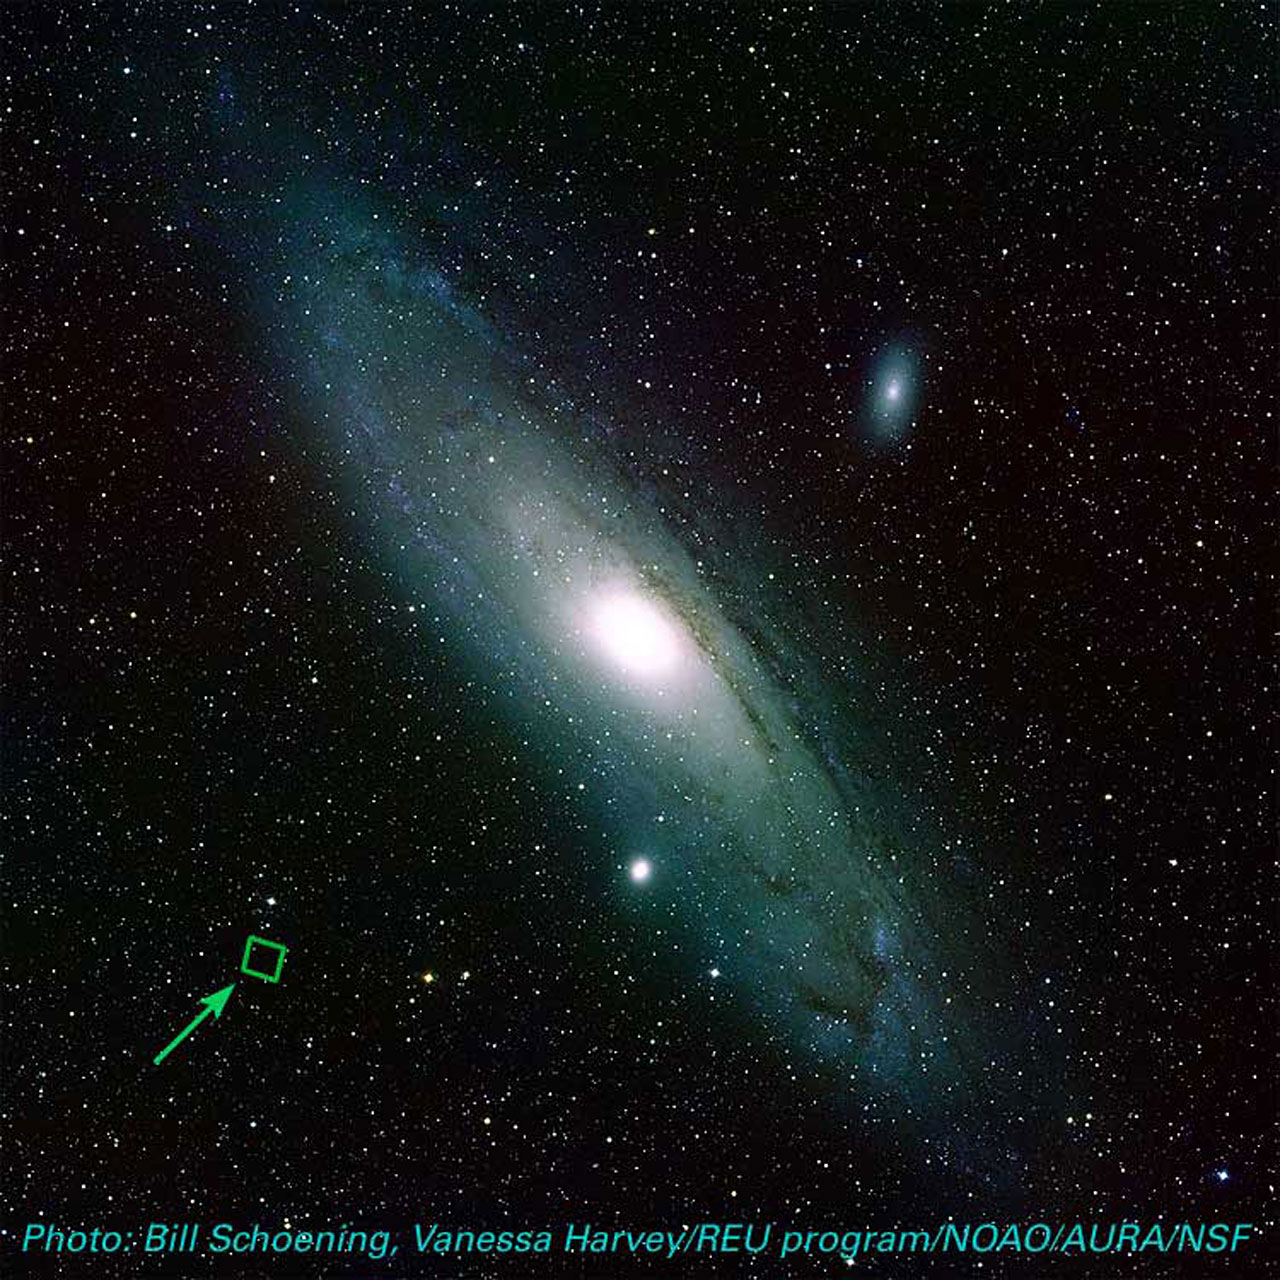 Location of ACS Image in M31 (ground-based image)